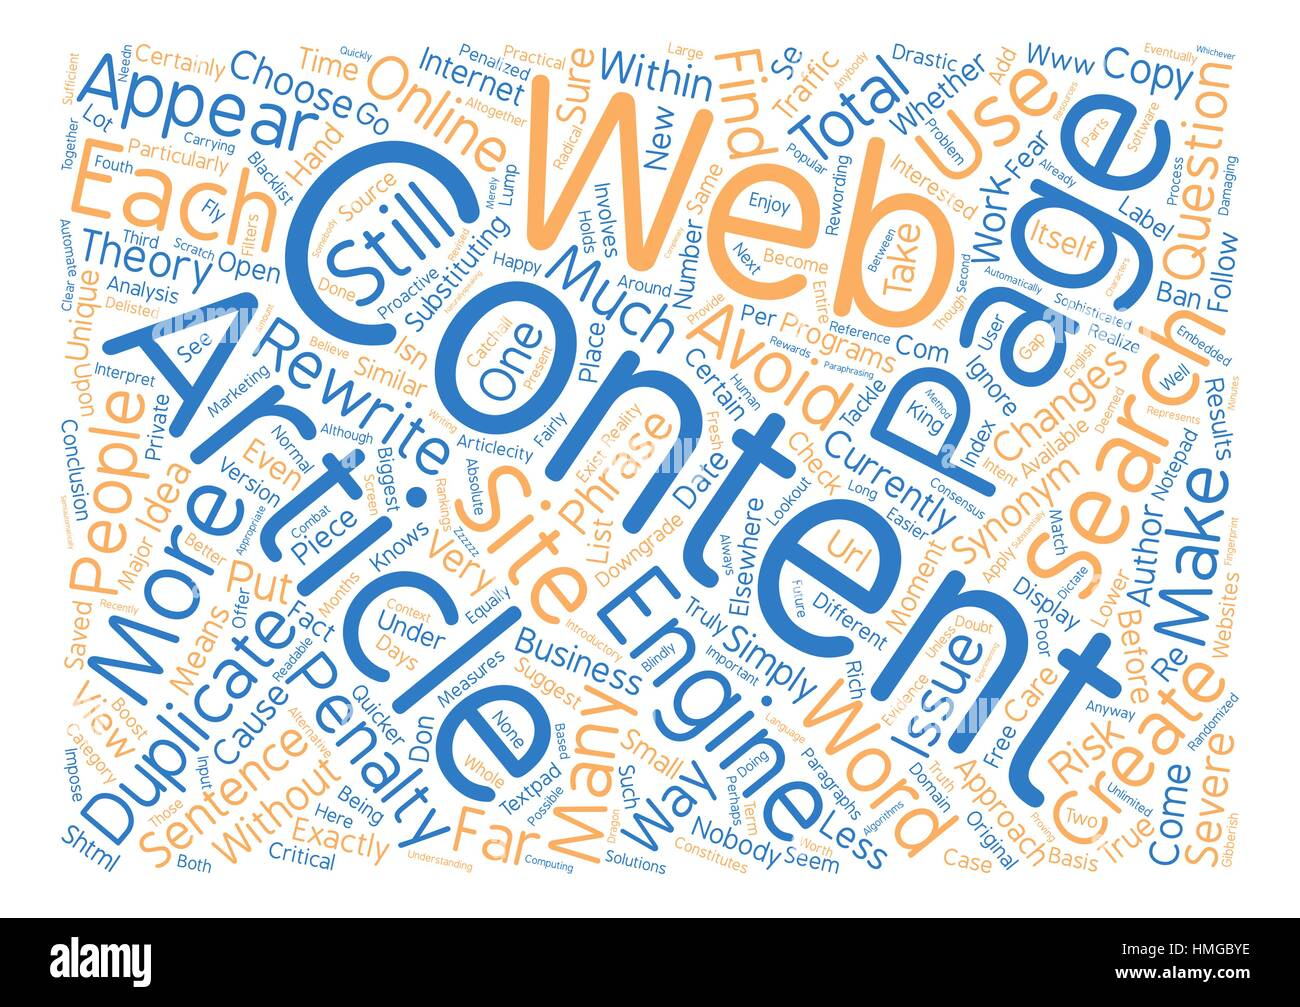 America s Happiness Index At New Low Word Cloud Concept Text Background Stock Vector